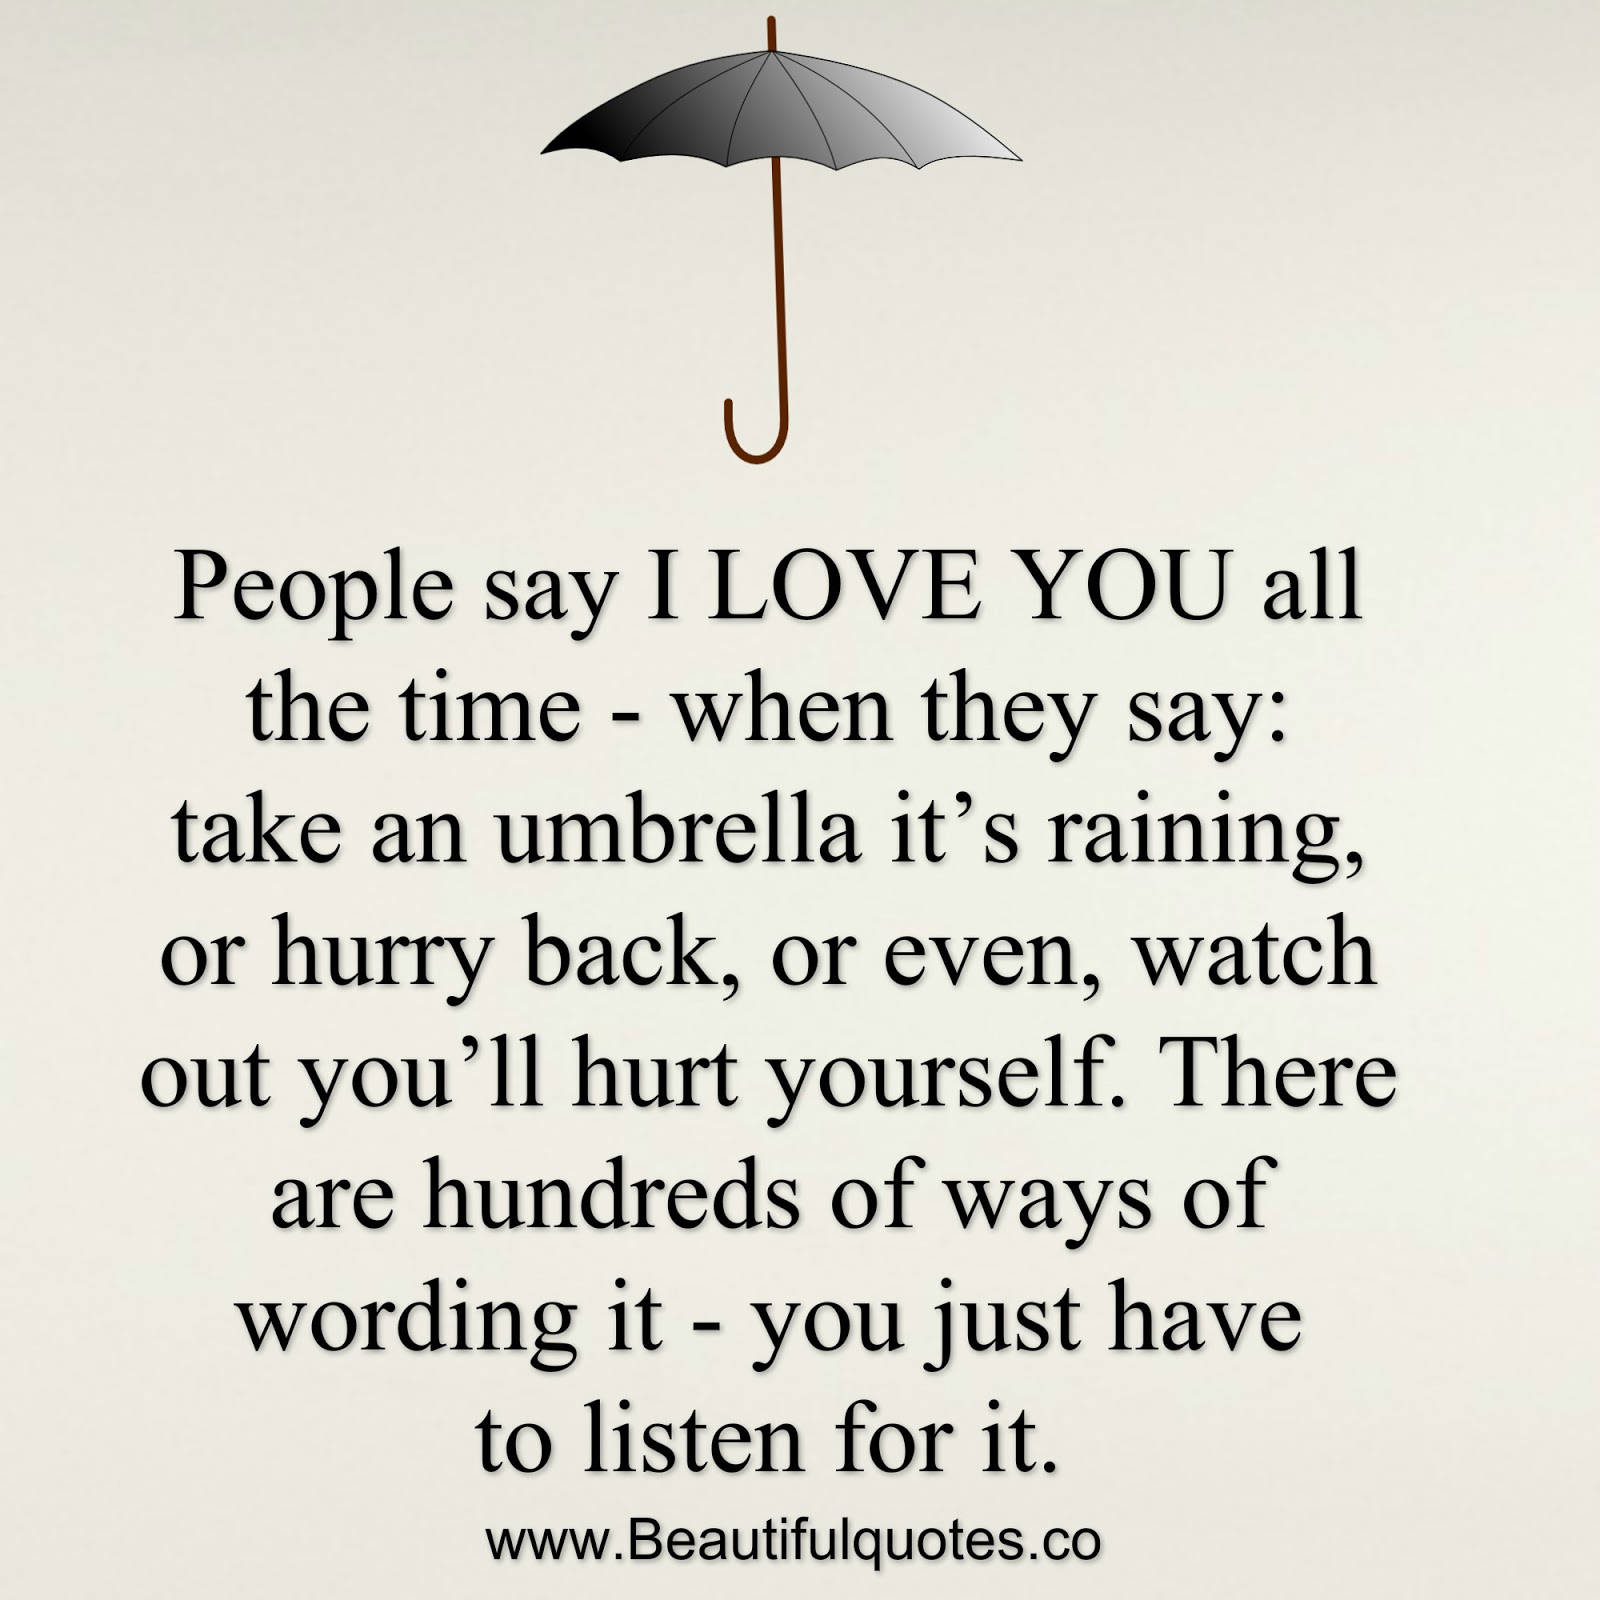 I Love You Quotes When I Say More: People Say I Love You All The Time